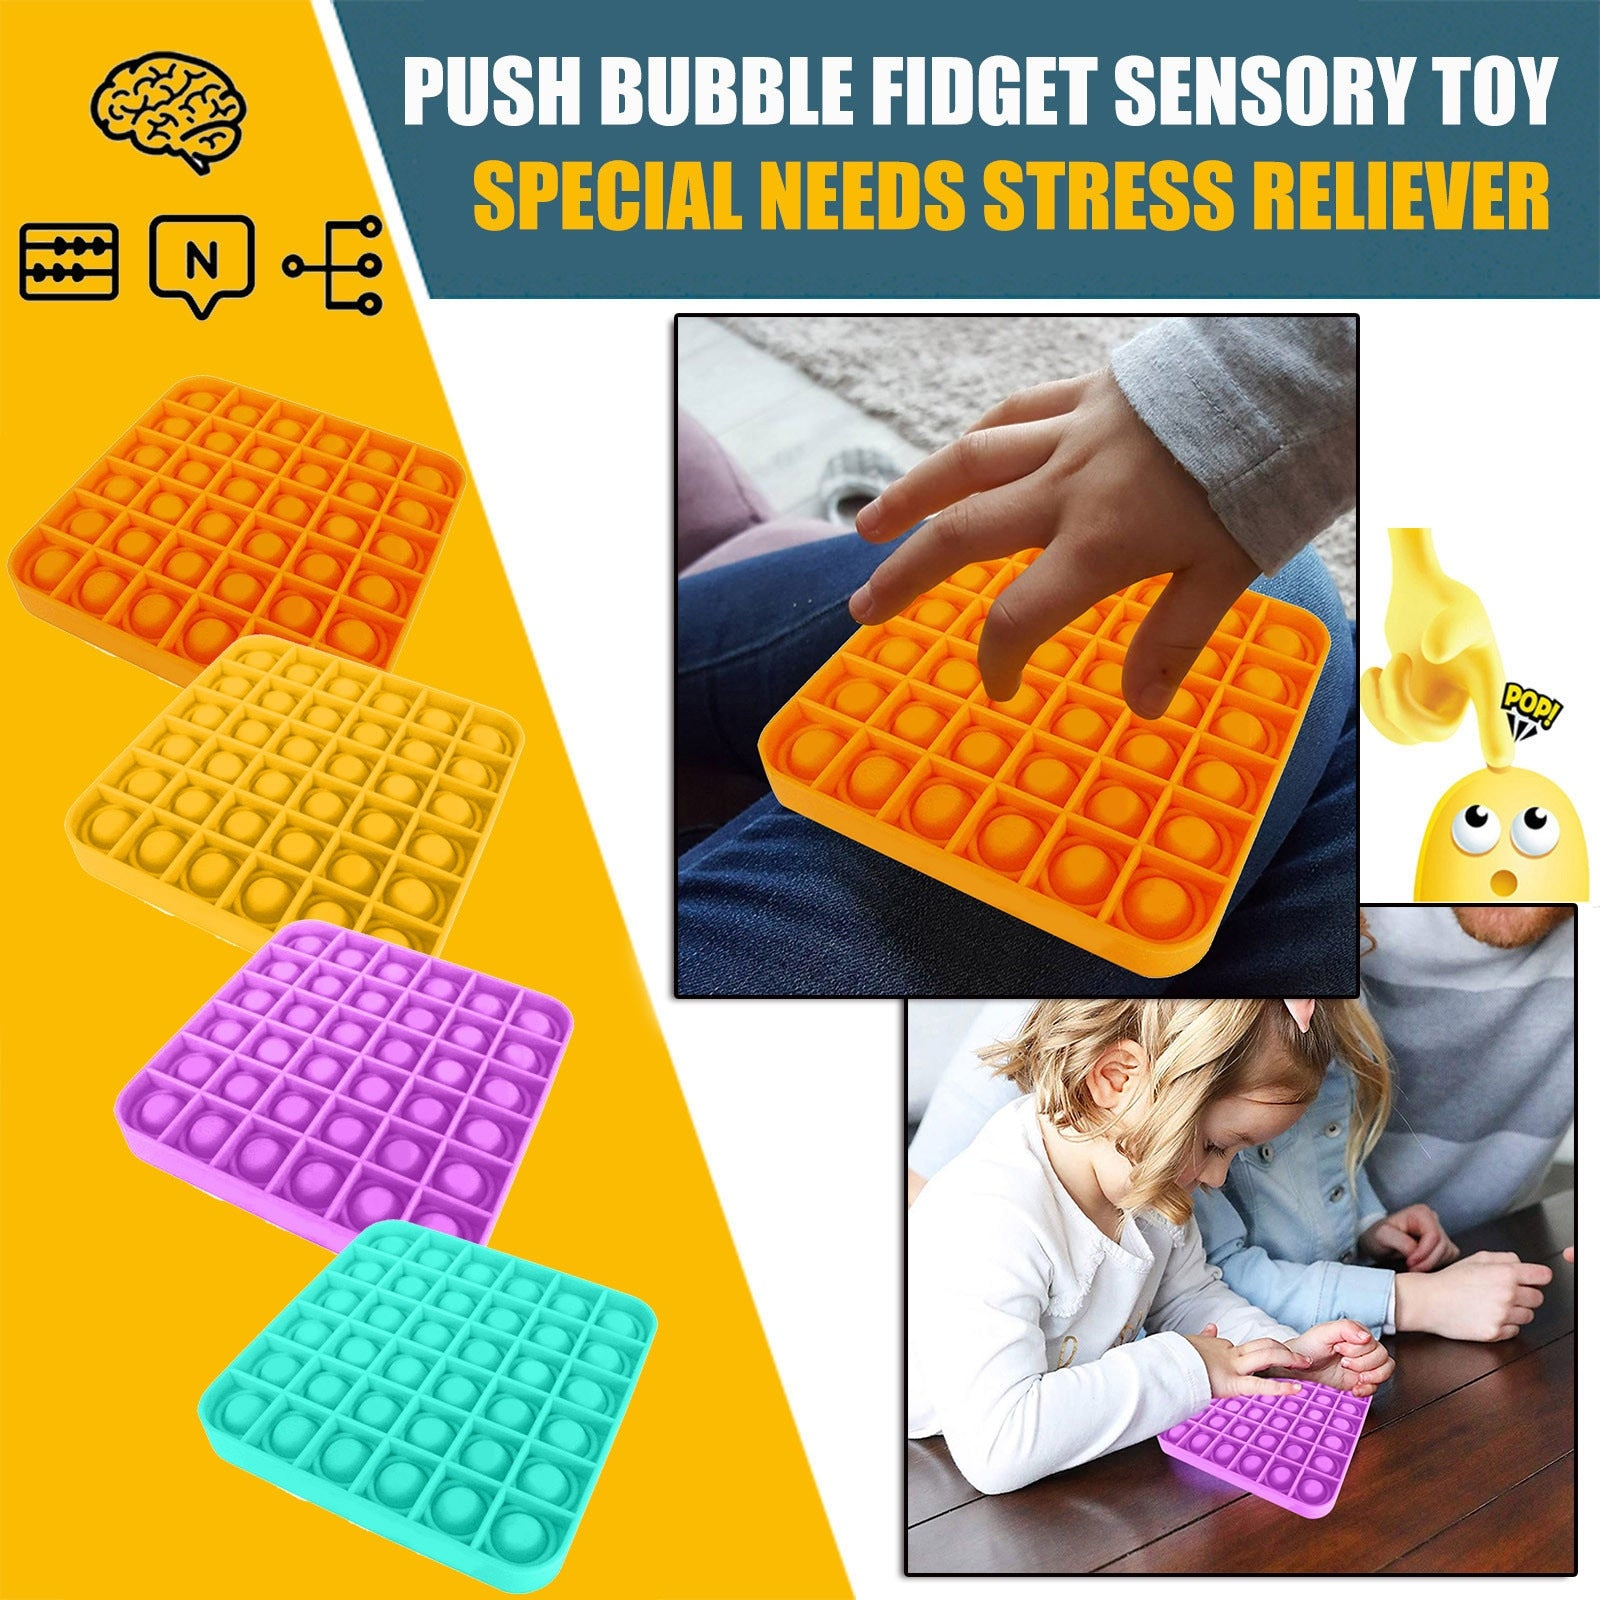 Push Bubble Fidget Sensory Toy Anxiety Reliever Kids Adults